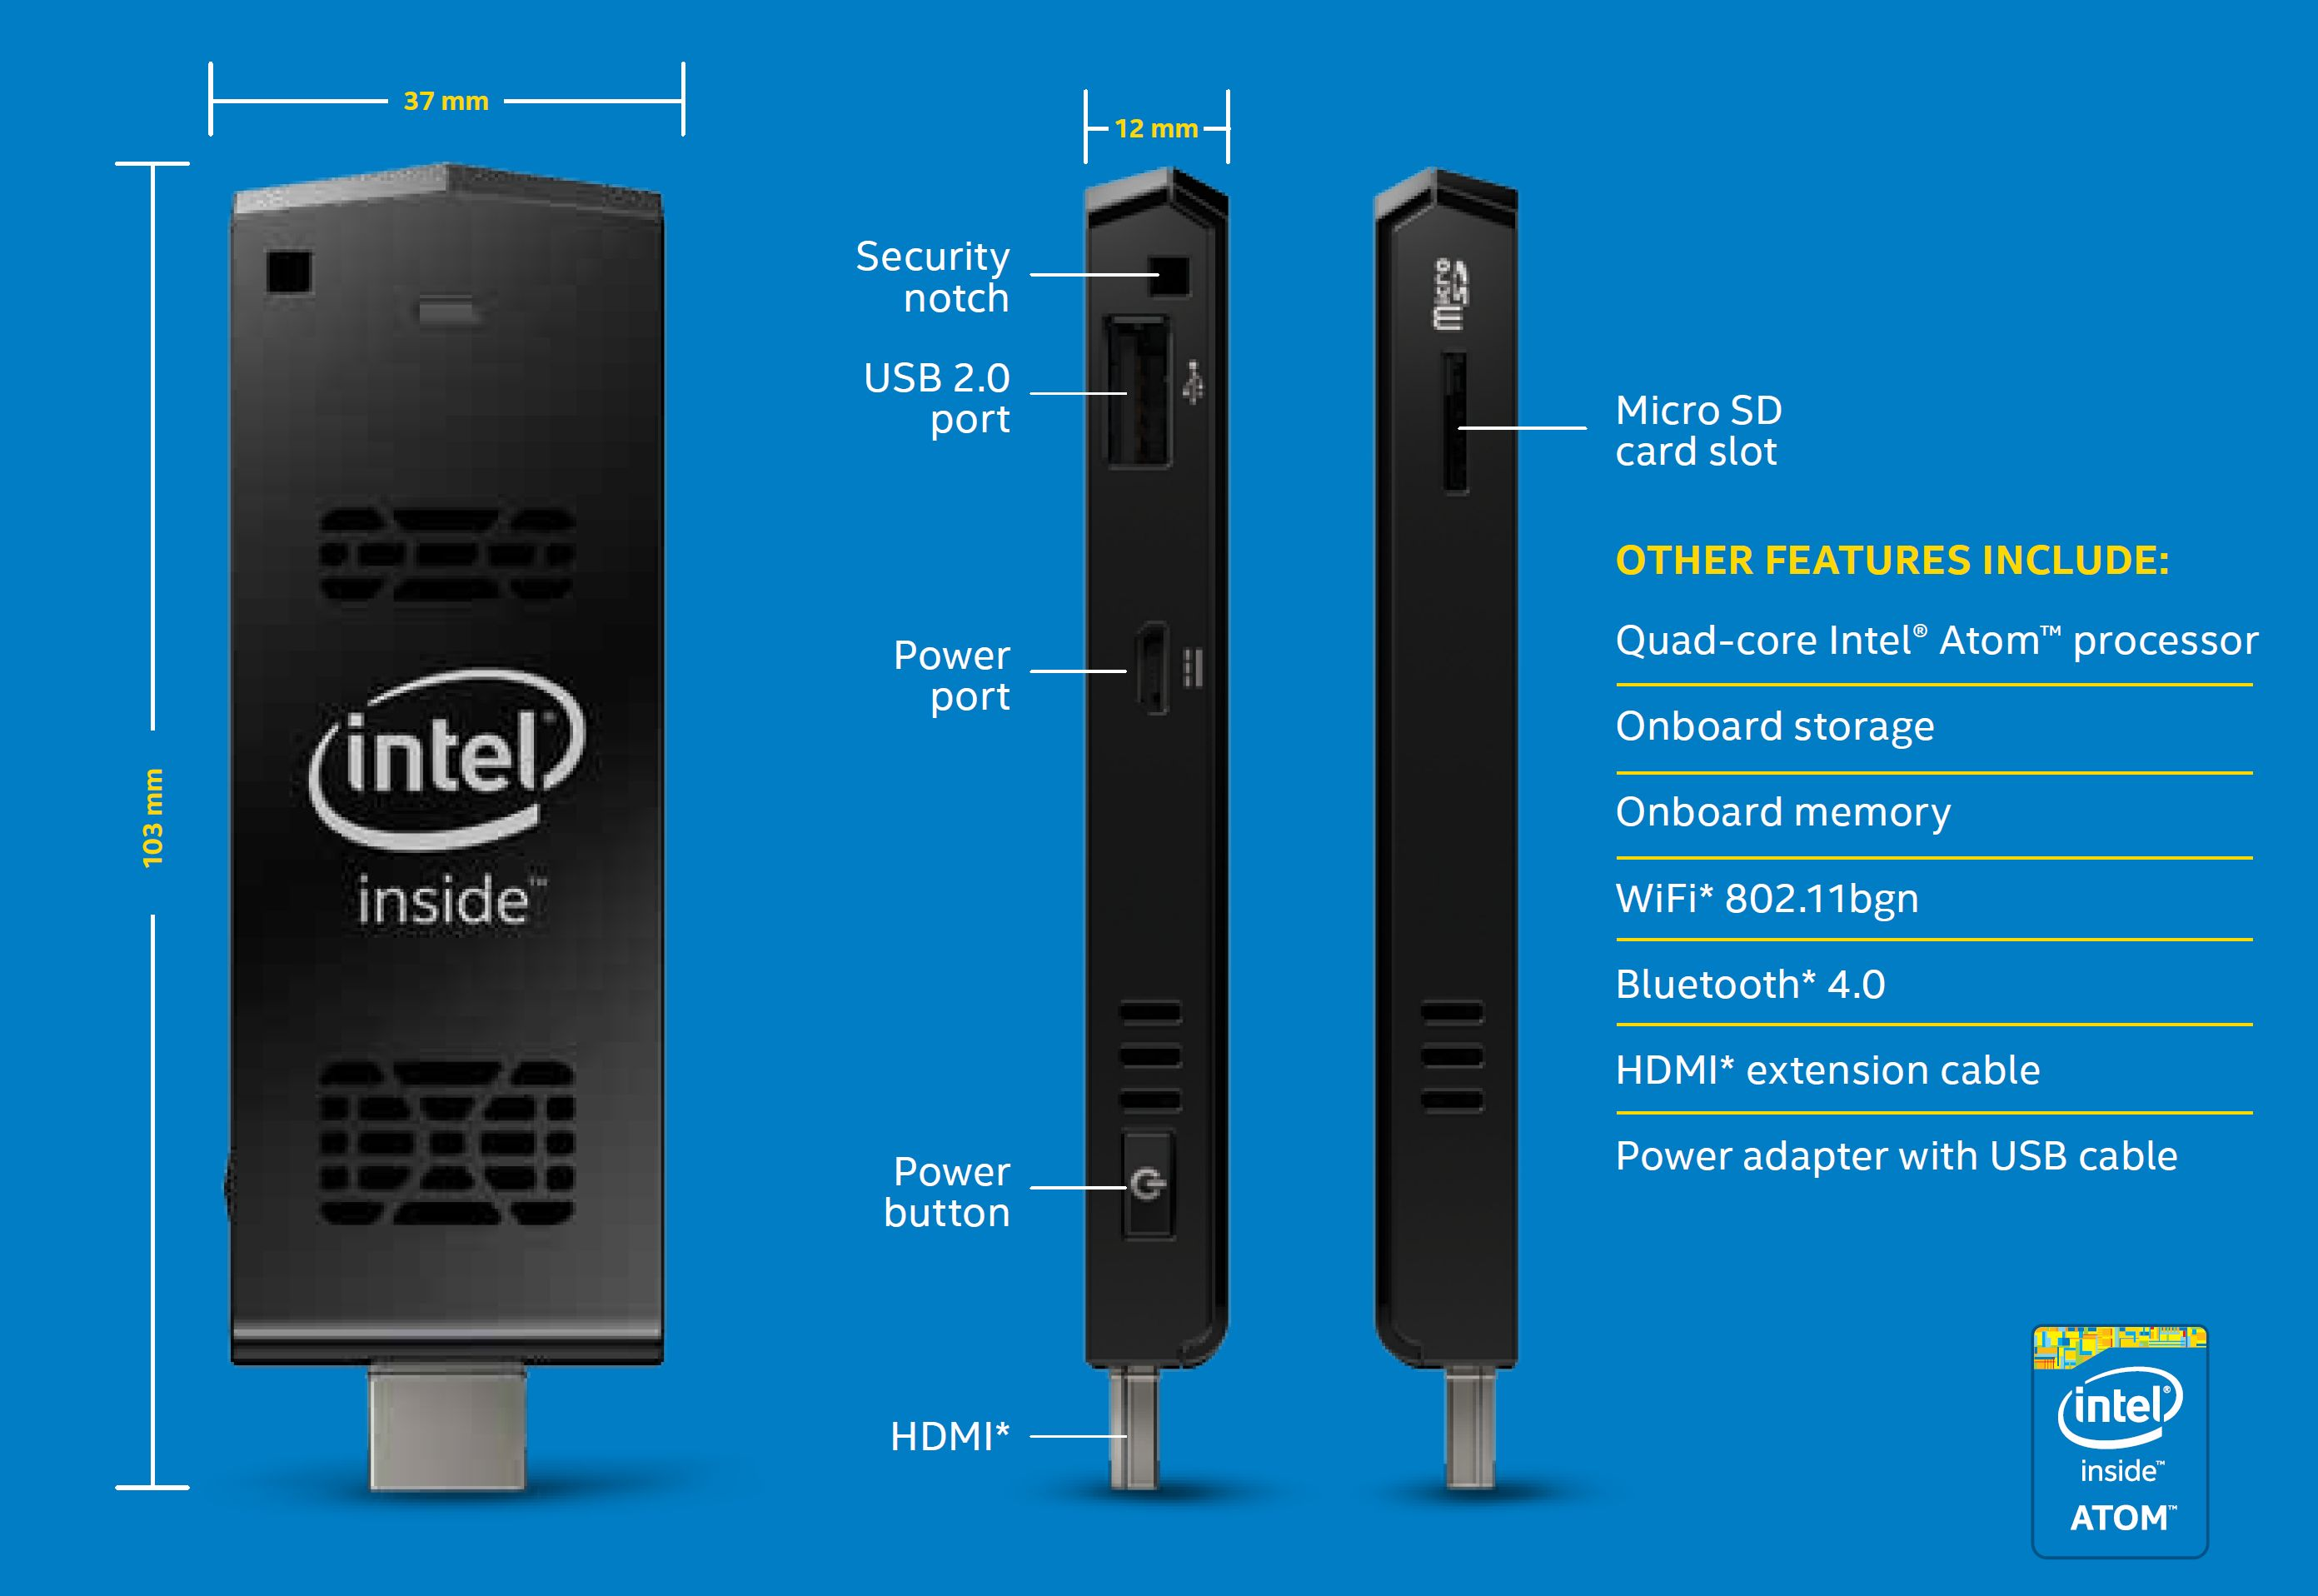 Ralink RT bgn wi-fi driver for Windows 10 - HP Support Community